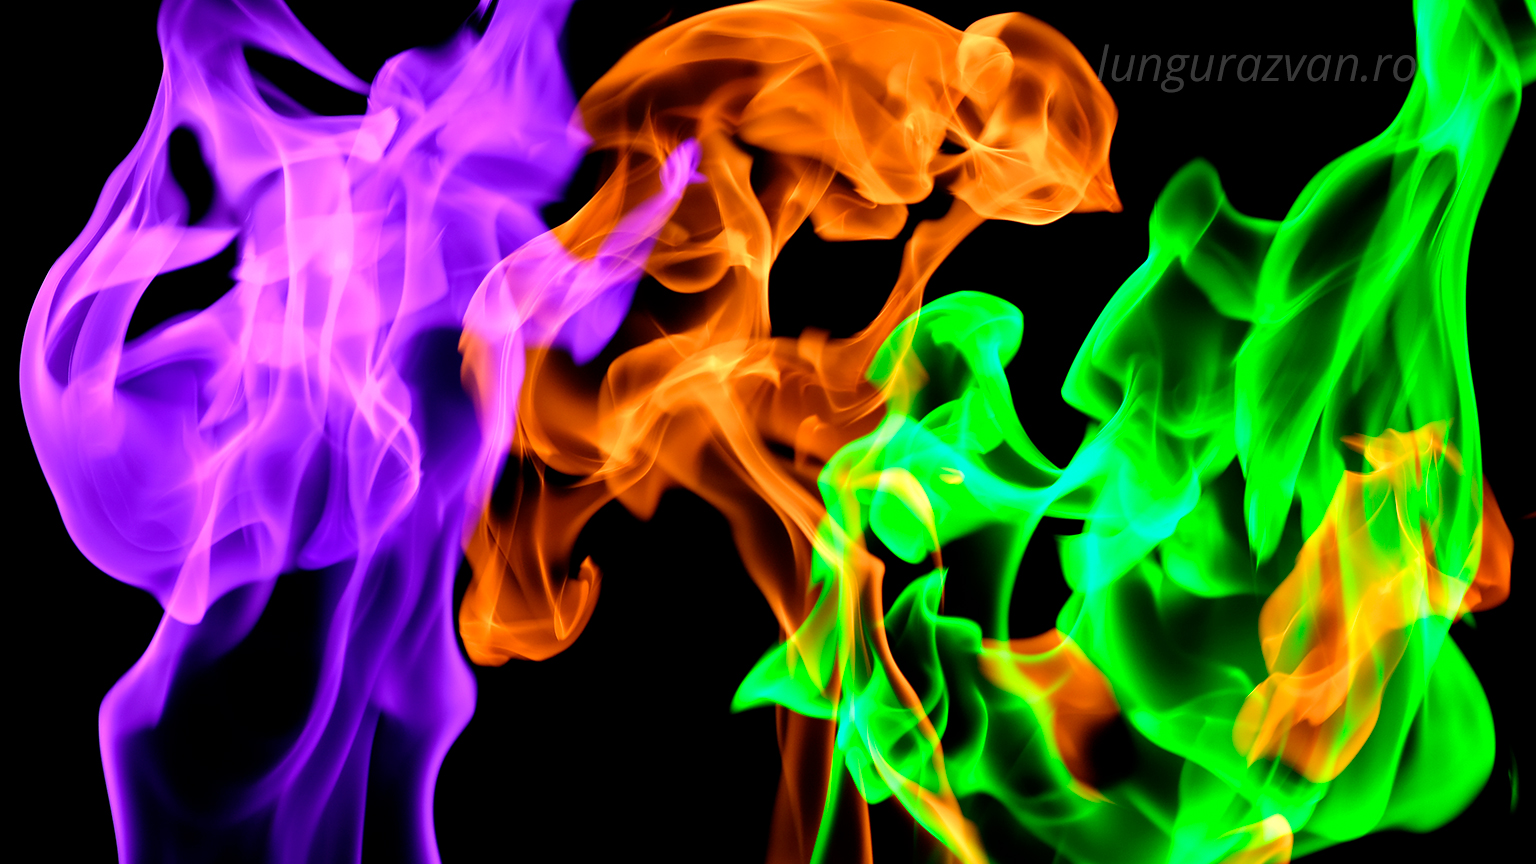 Colored smoke with 3 different colors